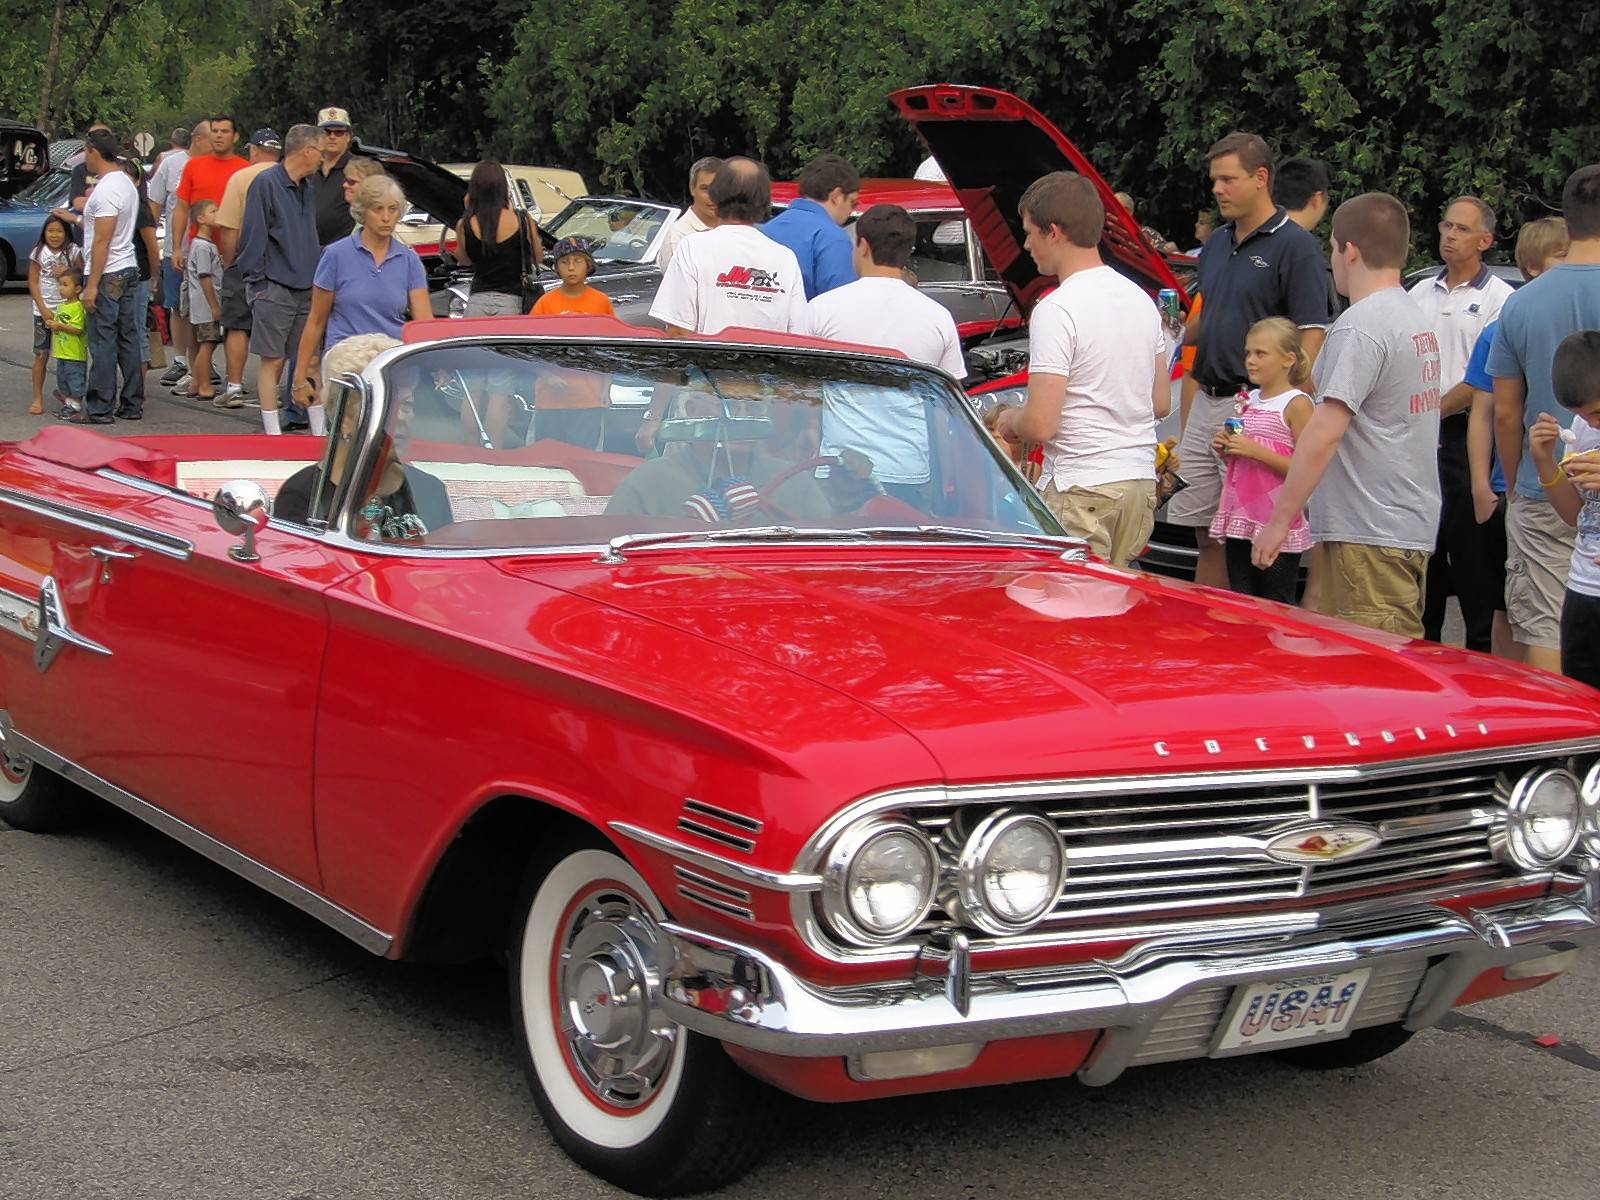 Barrington's Cruise Night will return as a weekly gathering this summer, but with some twists in an effort by village officials to increase visitor appeal.